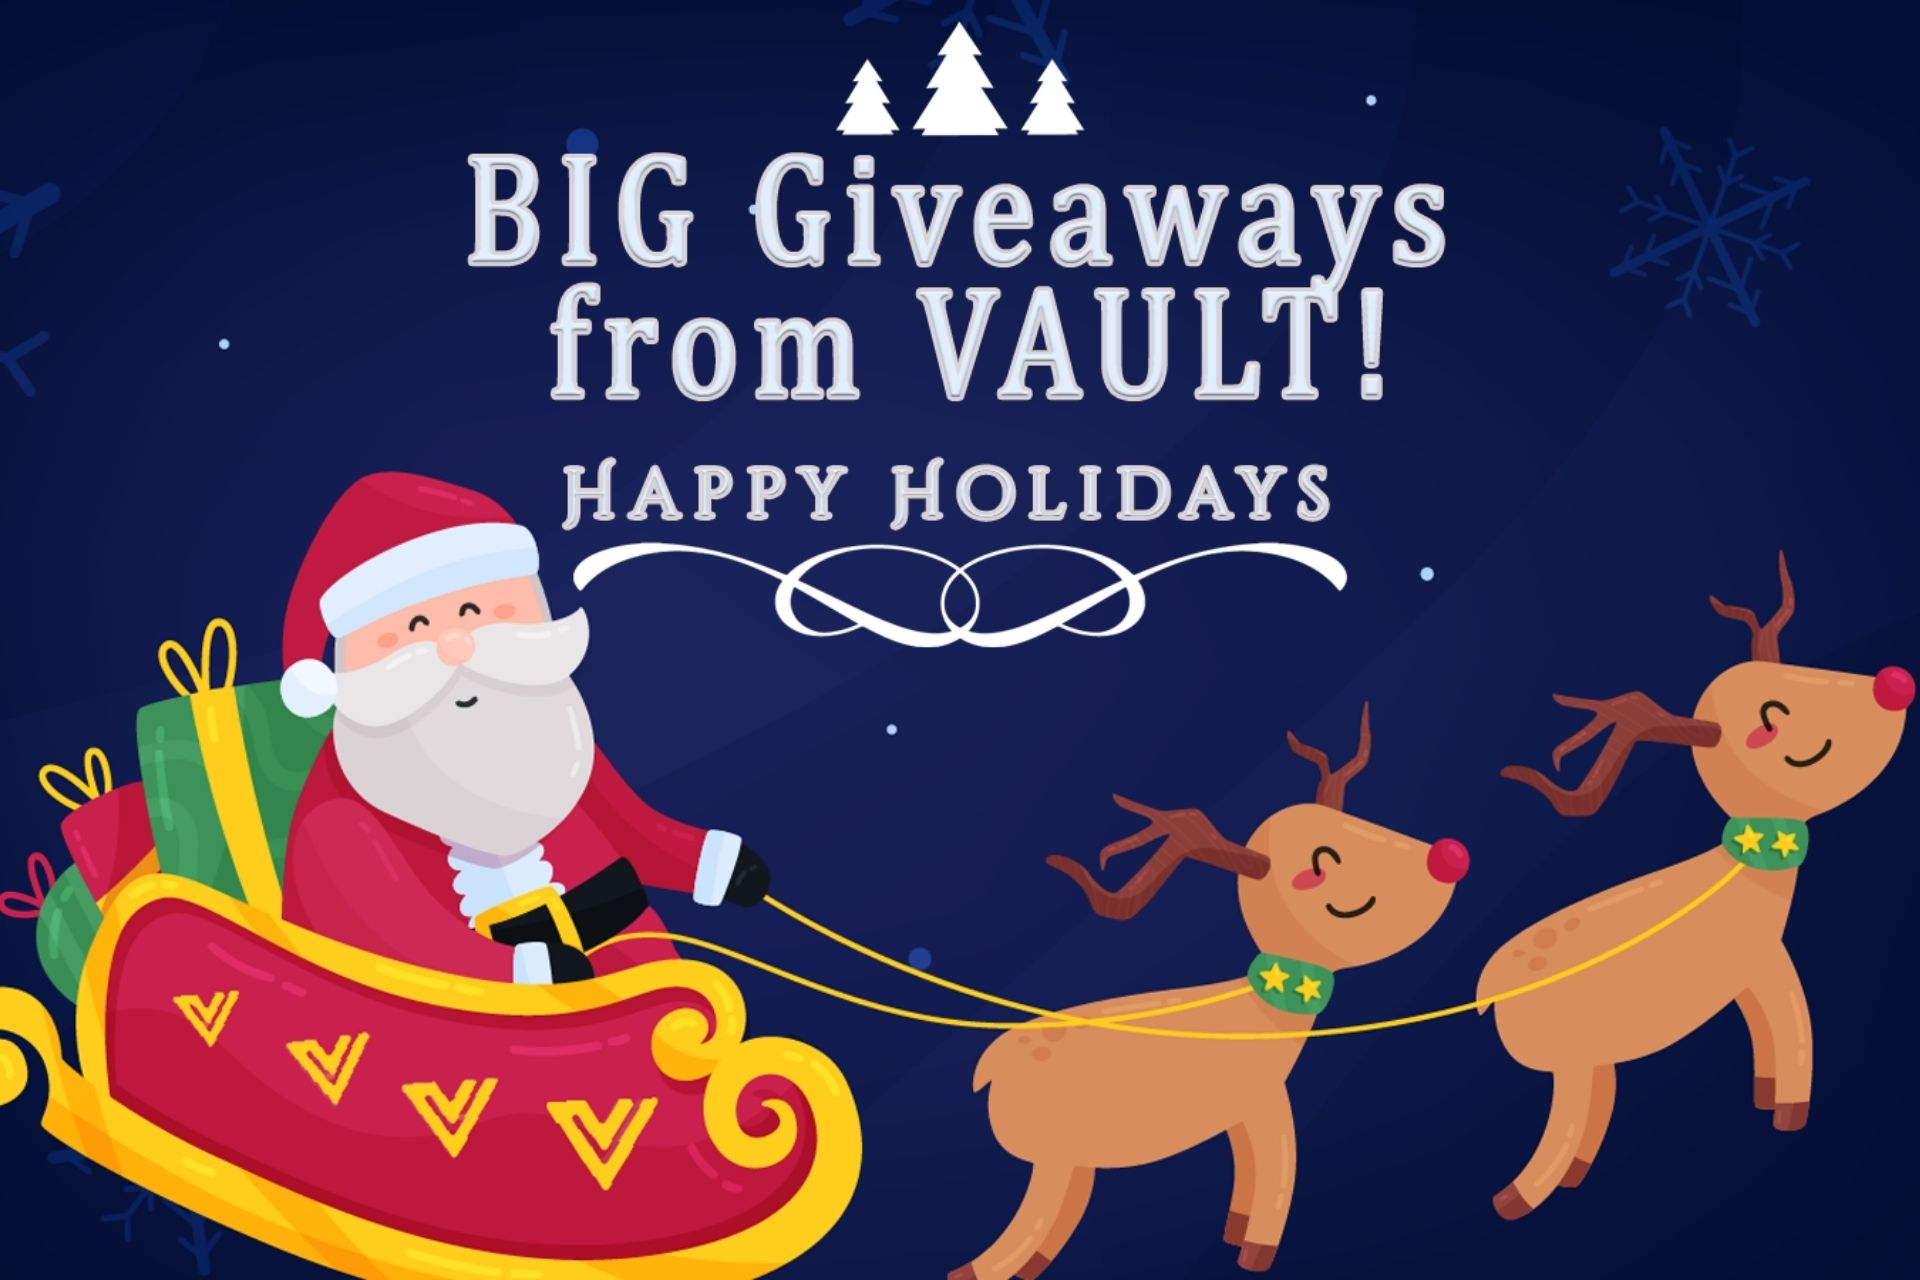 Happy Holidays from VAULT with Massive Crypto Giveaways!